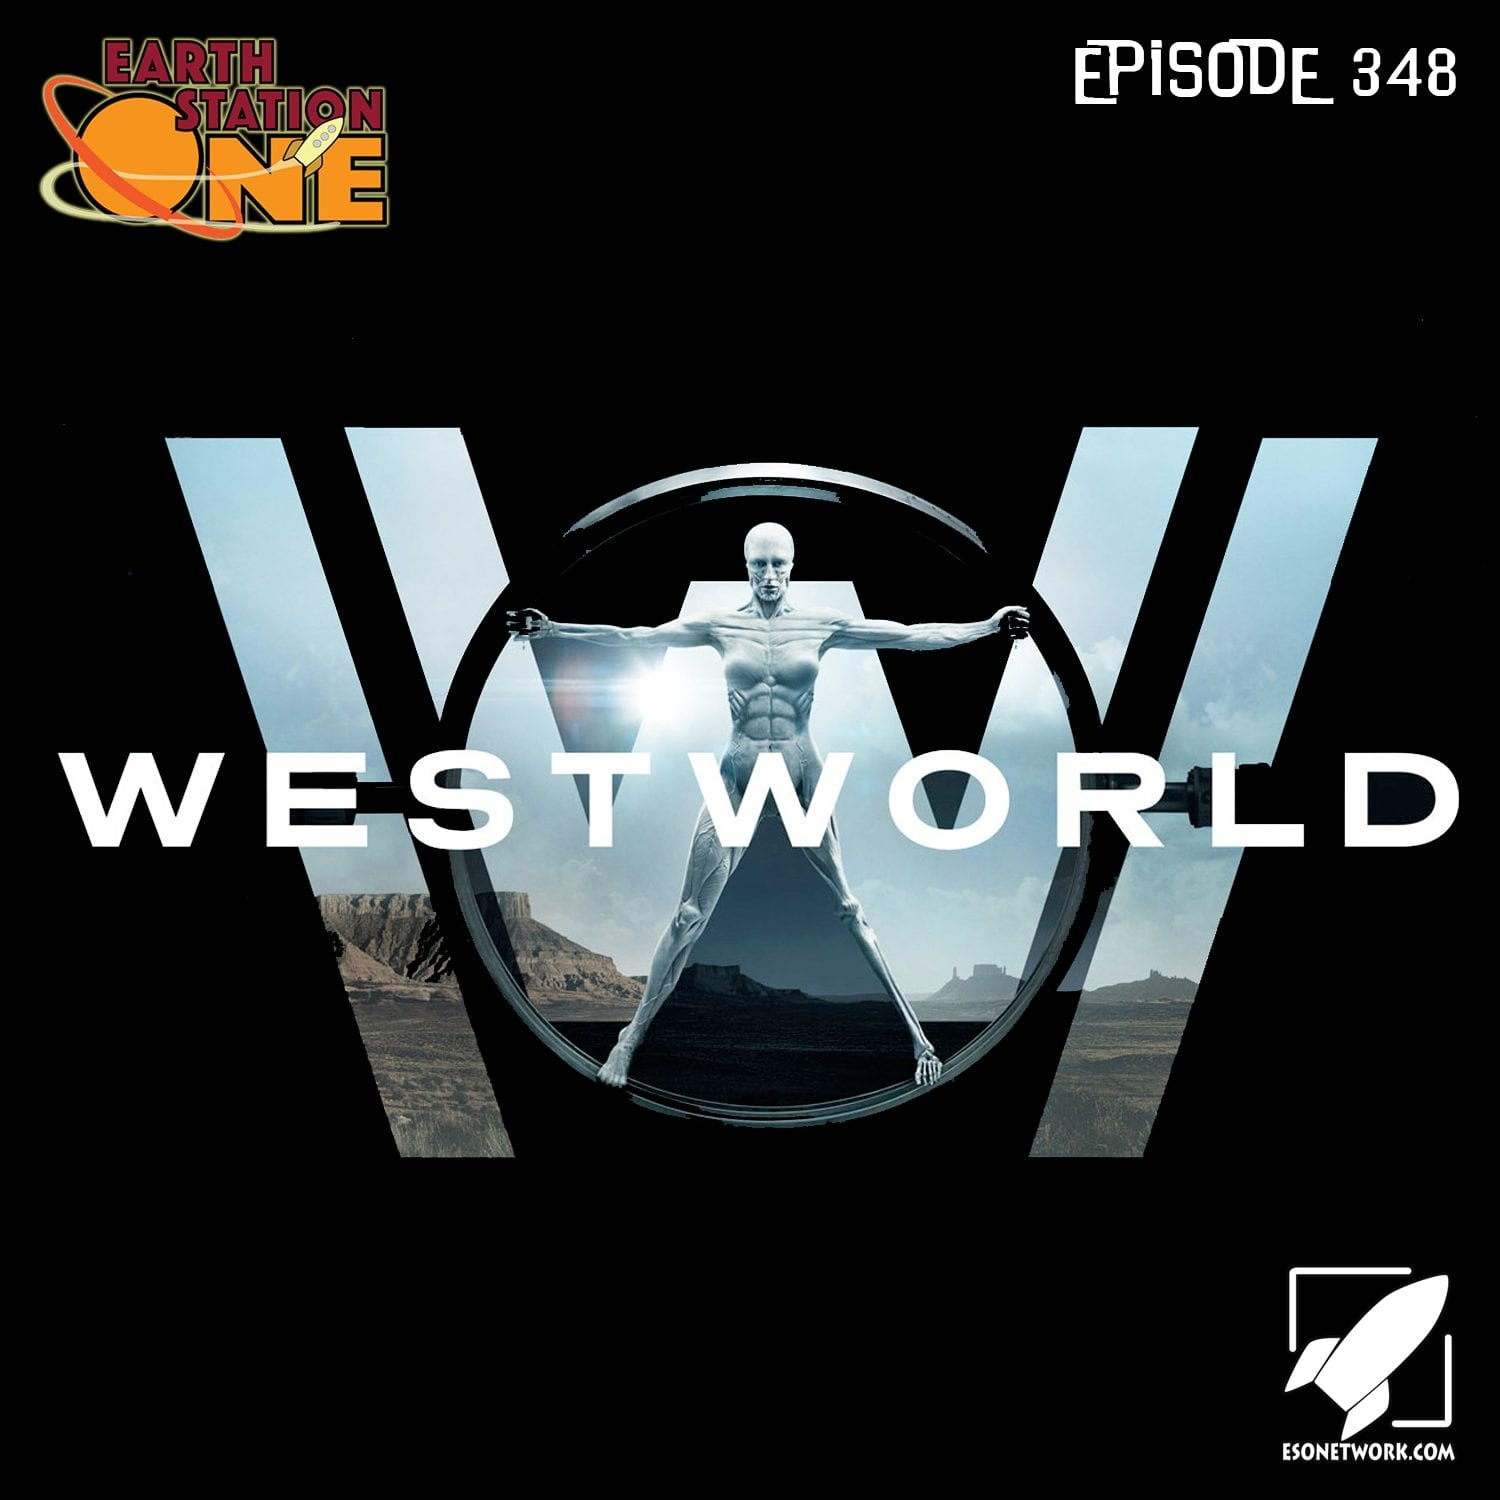 Earth Station One Podcast Ep 348 - Westworld